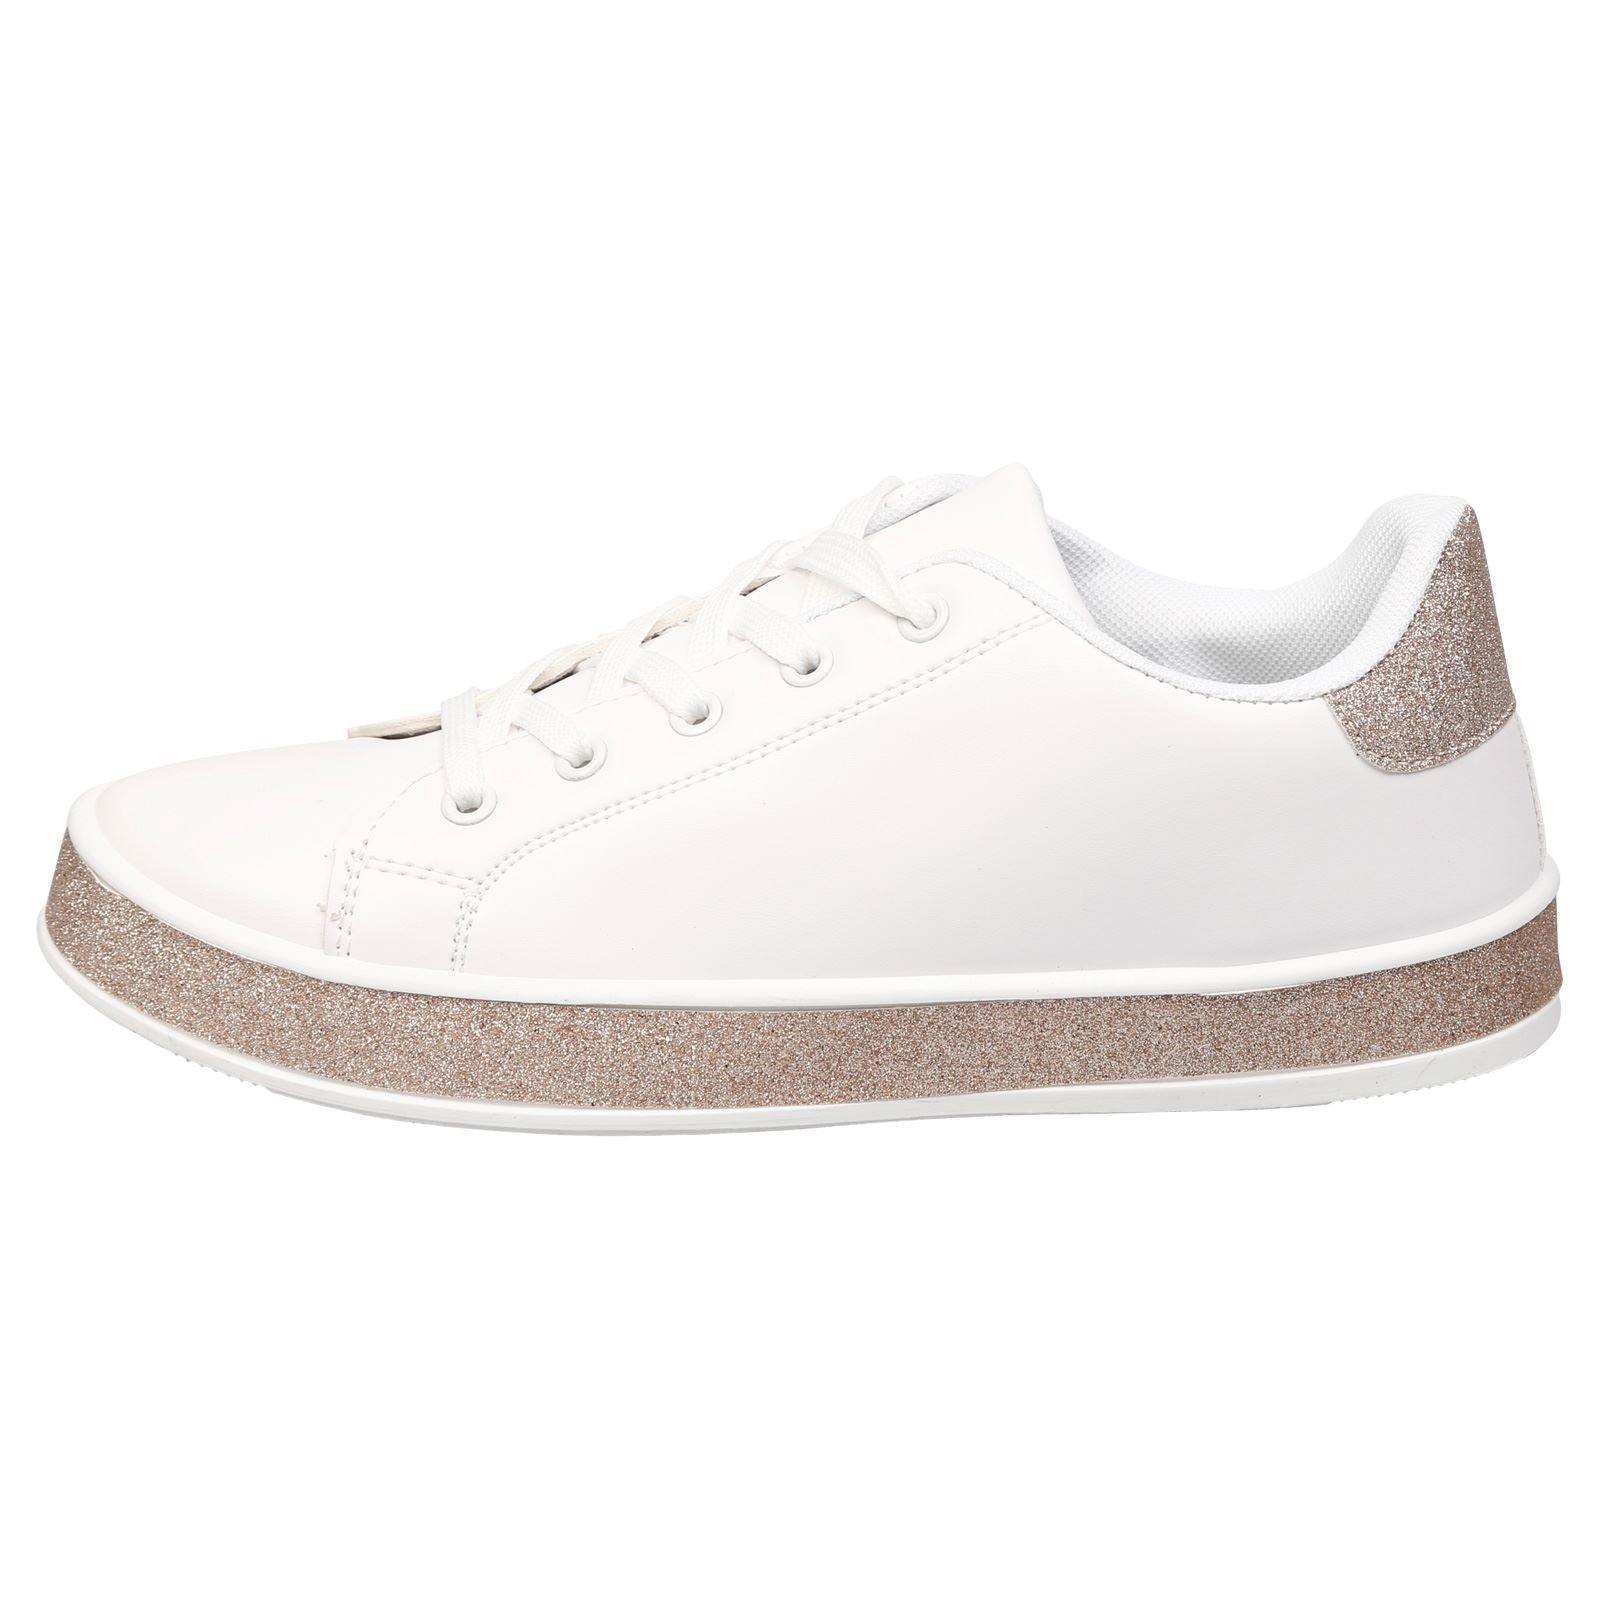 Koko Leather Look Skater Pumps in White with Rose Gold Glitter